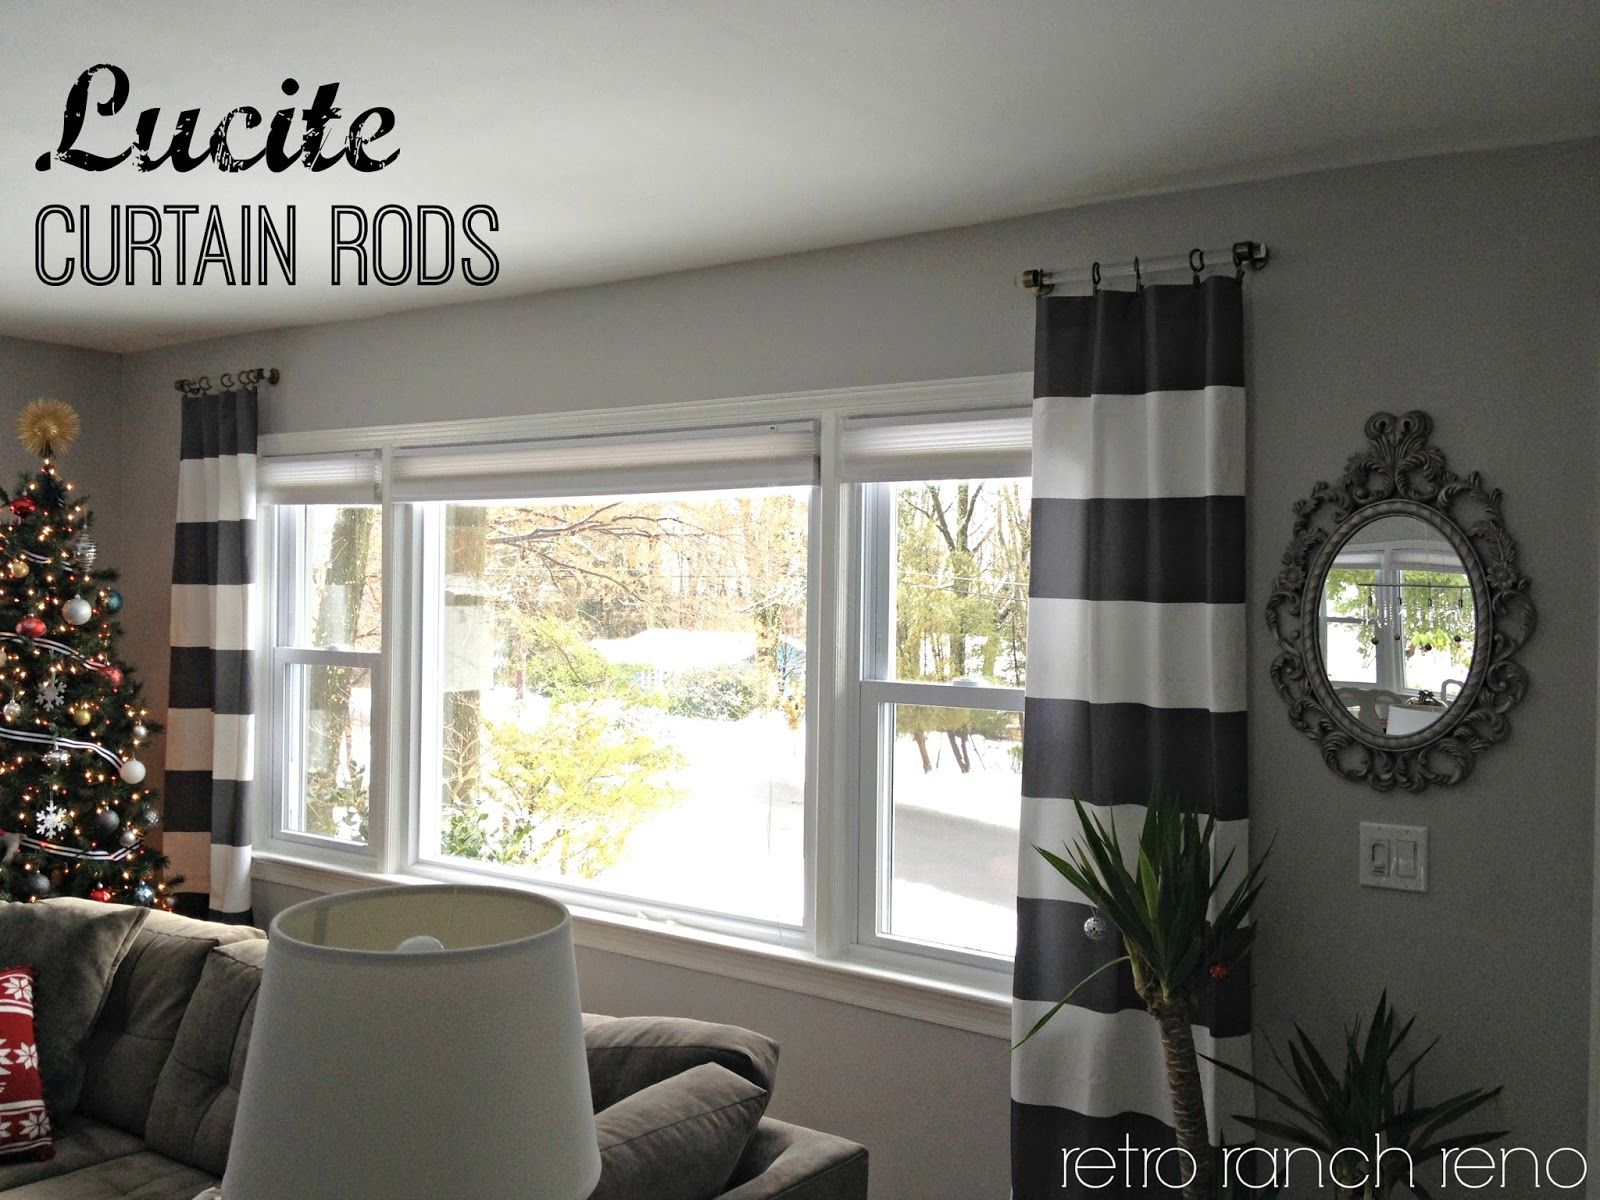 Enchanting short curtain rods for decorating a room amusing fabric drapery with